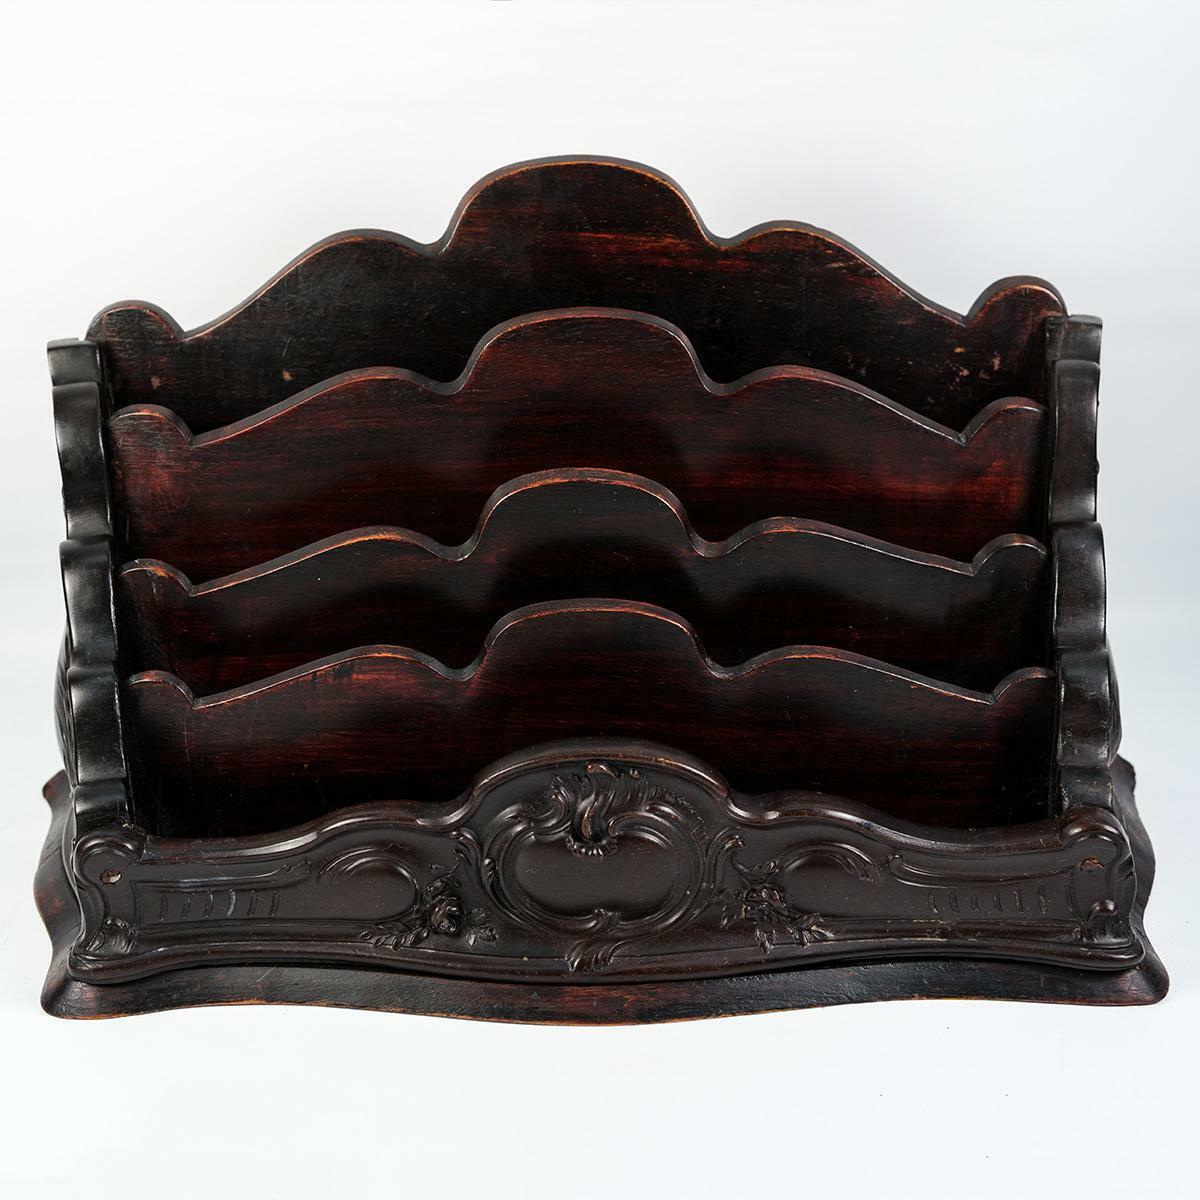 "Elegant Antique French Carved Stationery or Writer's Stand, Caddy, 13.75"" Long"